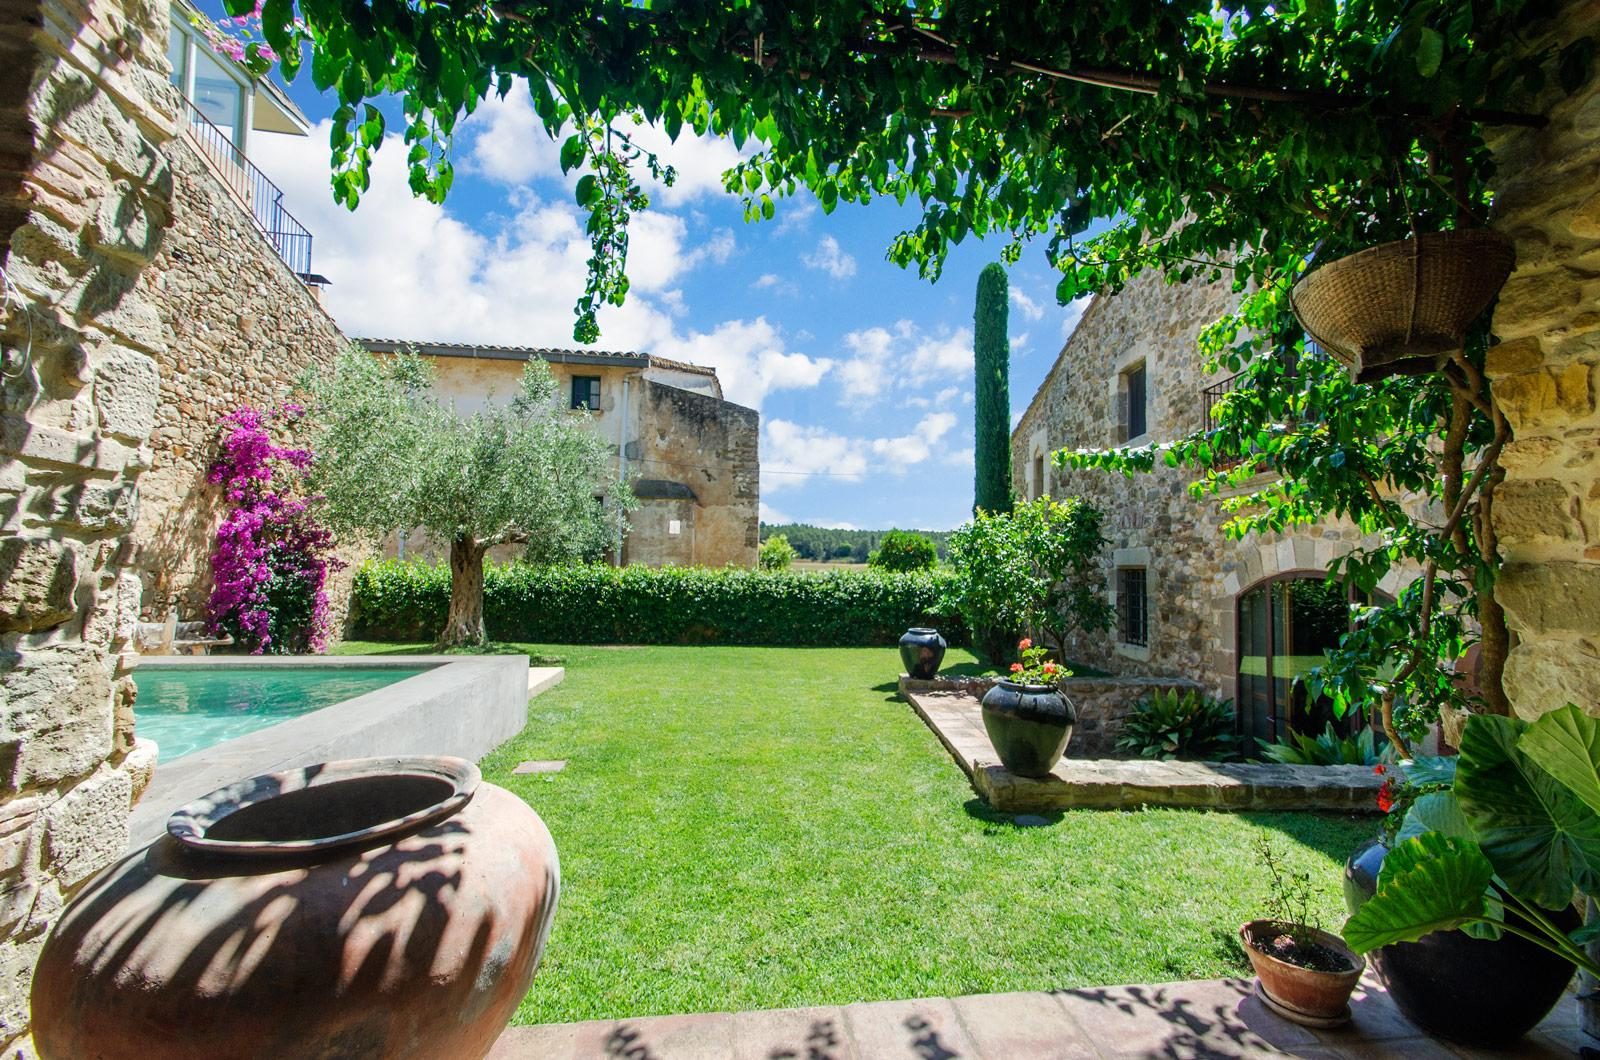 5. Villa for sale in Girona - Traditional Masia, Catalonia country house, for sale in Girona